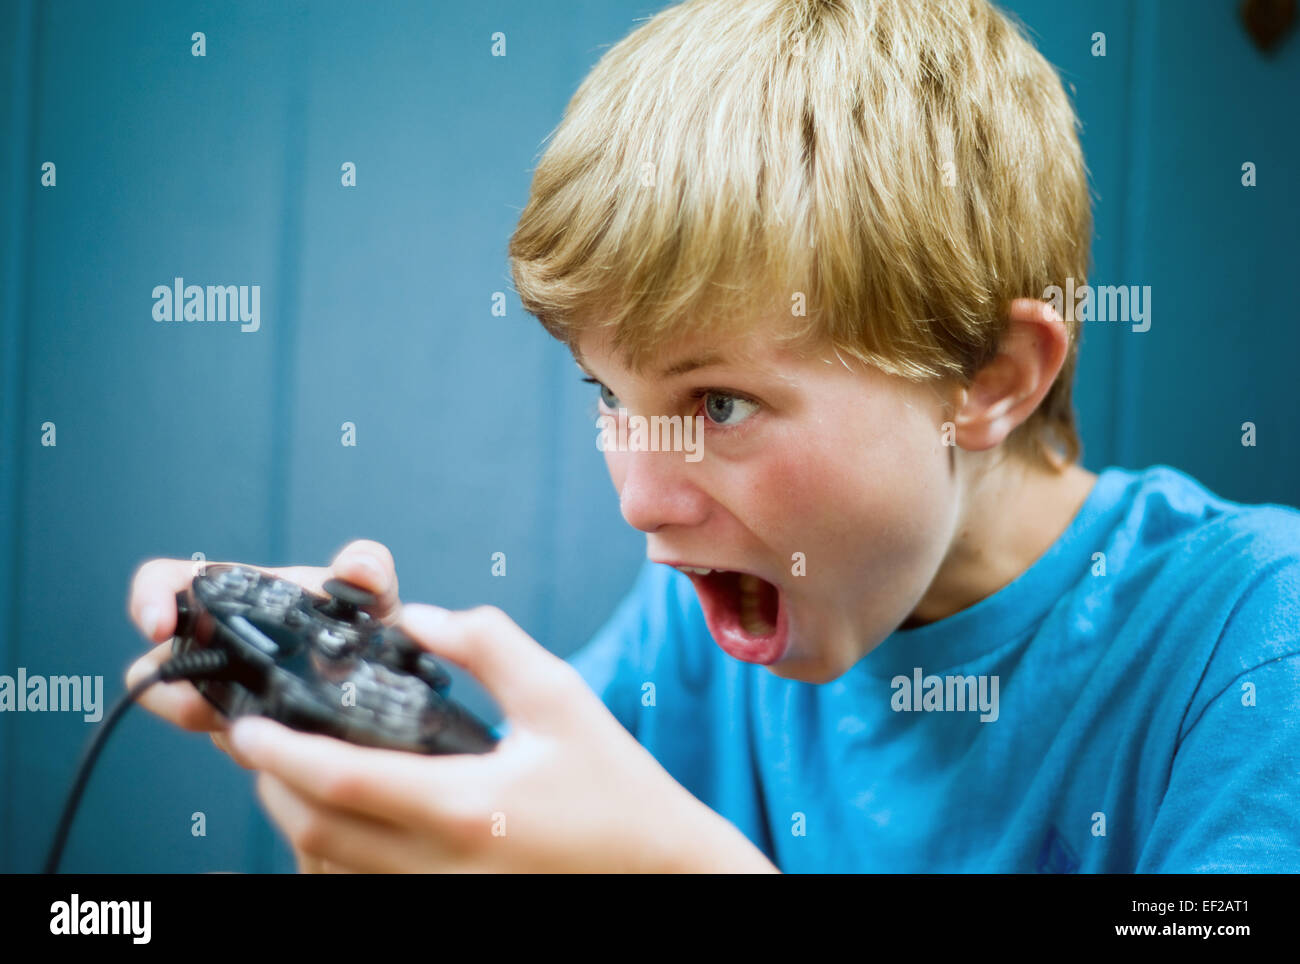 Young boy, 10-11-12-13, playing video game using controller with concentration - Stock Image